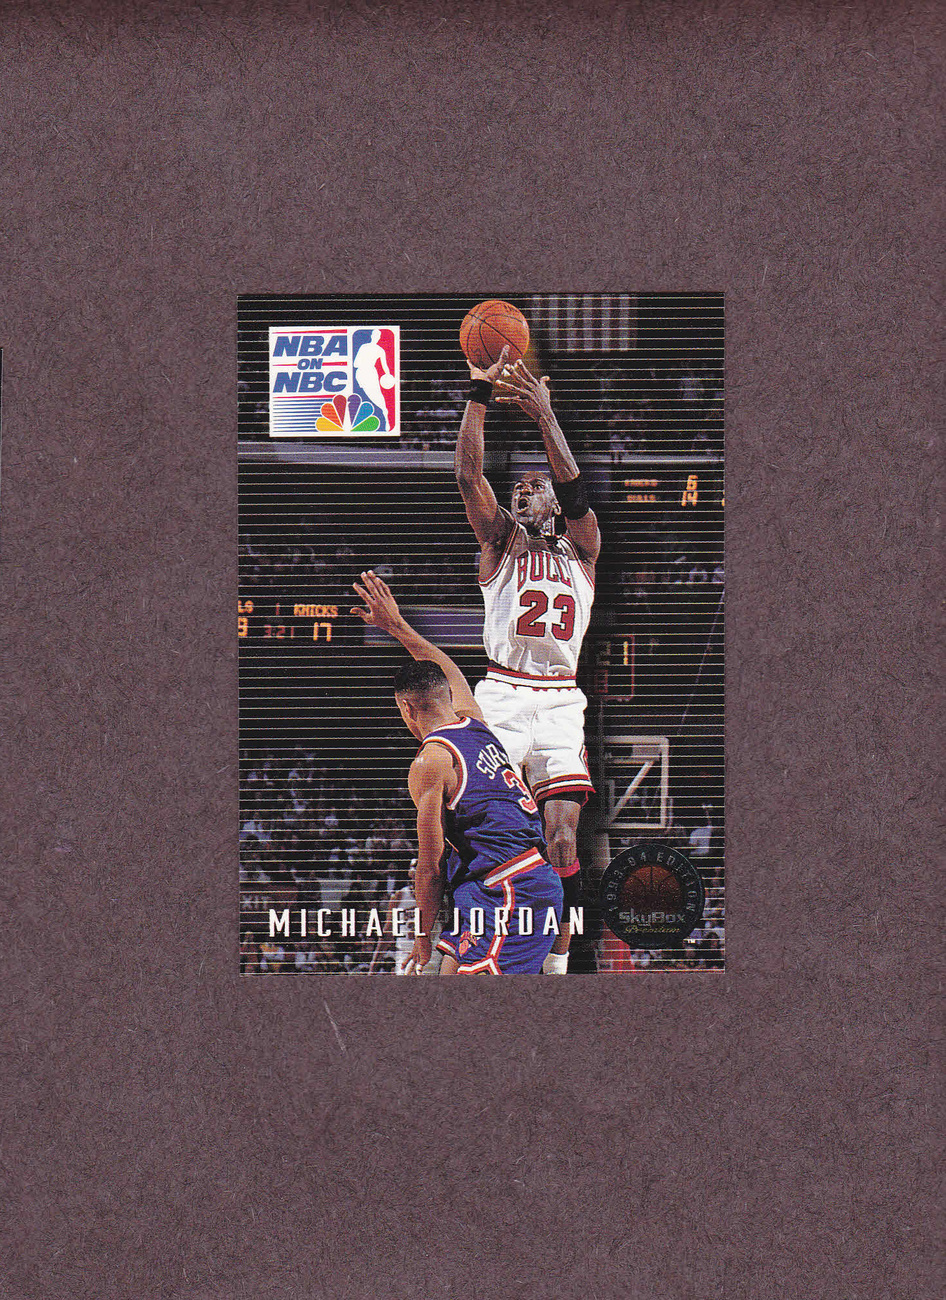 1993-94 Skybox Premium # 14 Michael Jordan Chicago Bulls NM